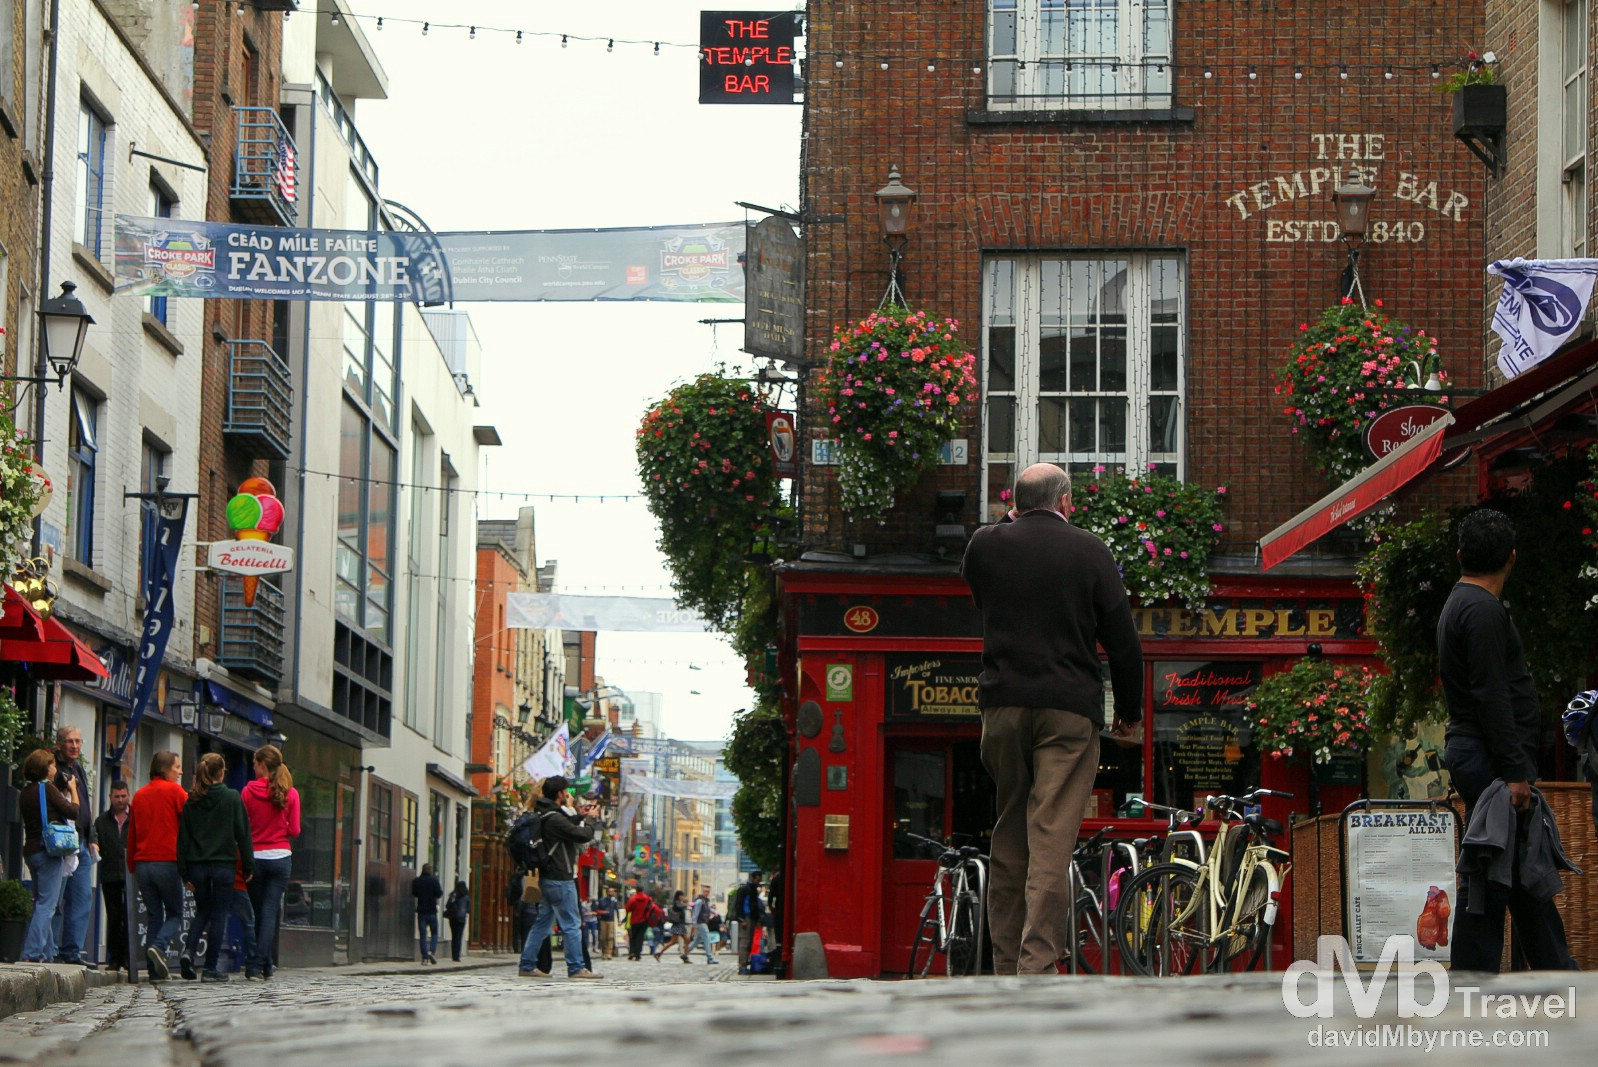 Temple Bar, Dublin, Ireland. September 1, 2014.